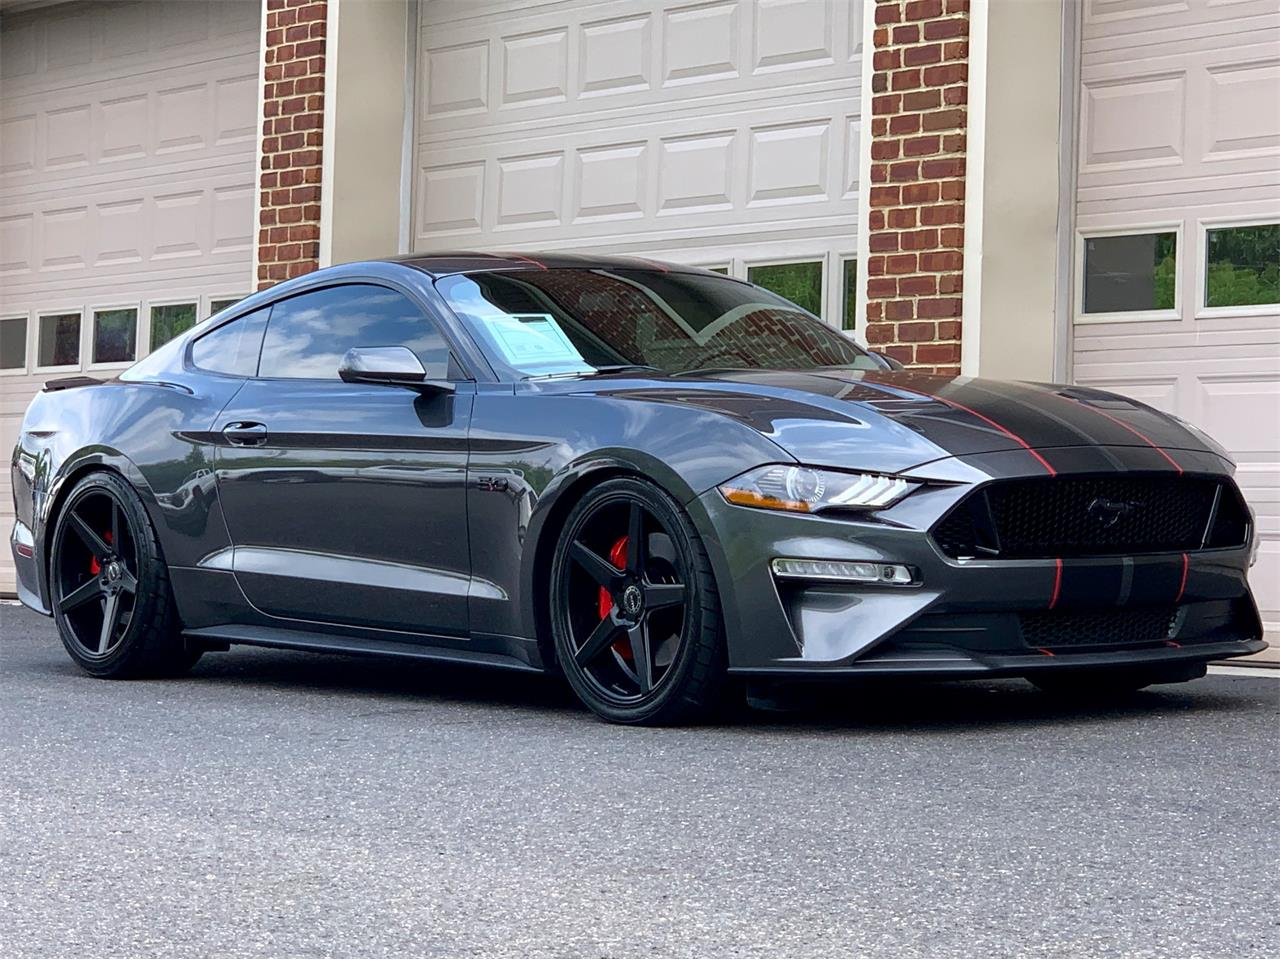 2019 Ford Mustang GT (CC-1297659) for sale in Edgewater Park, New Jersey